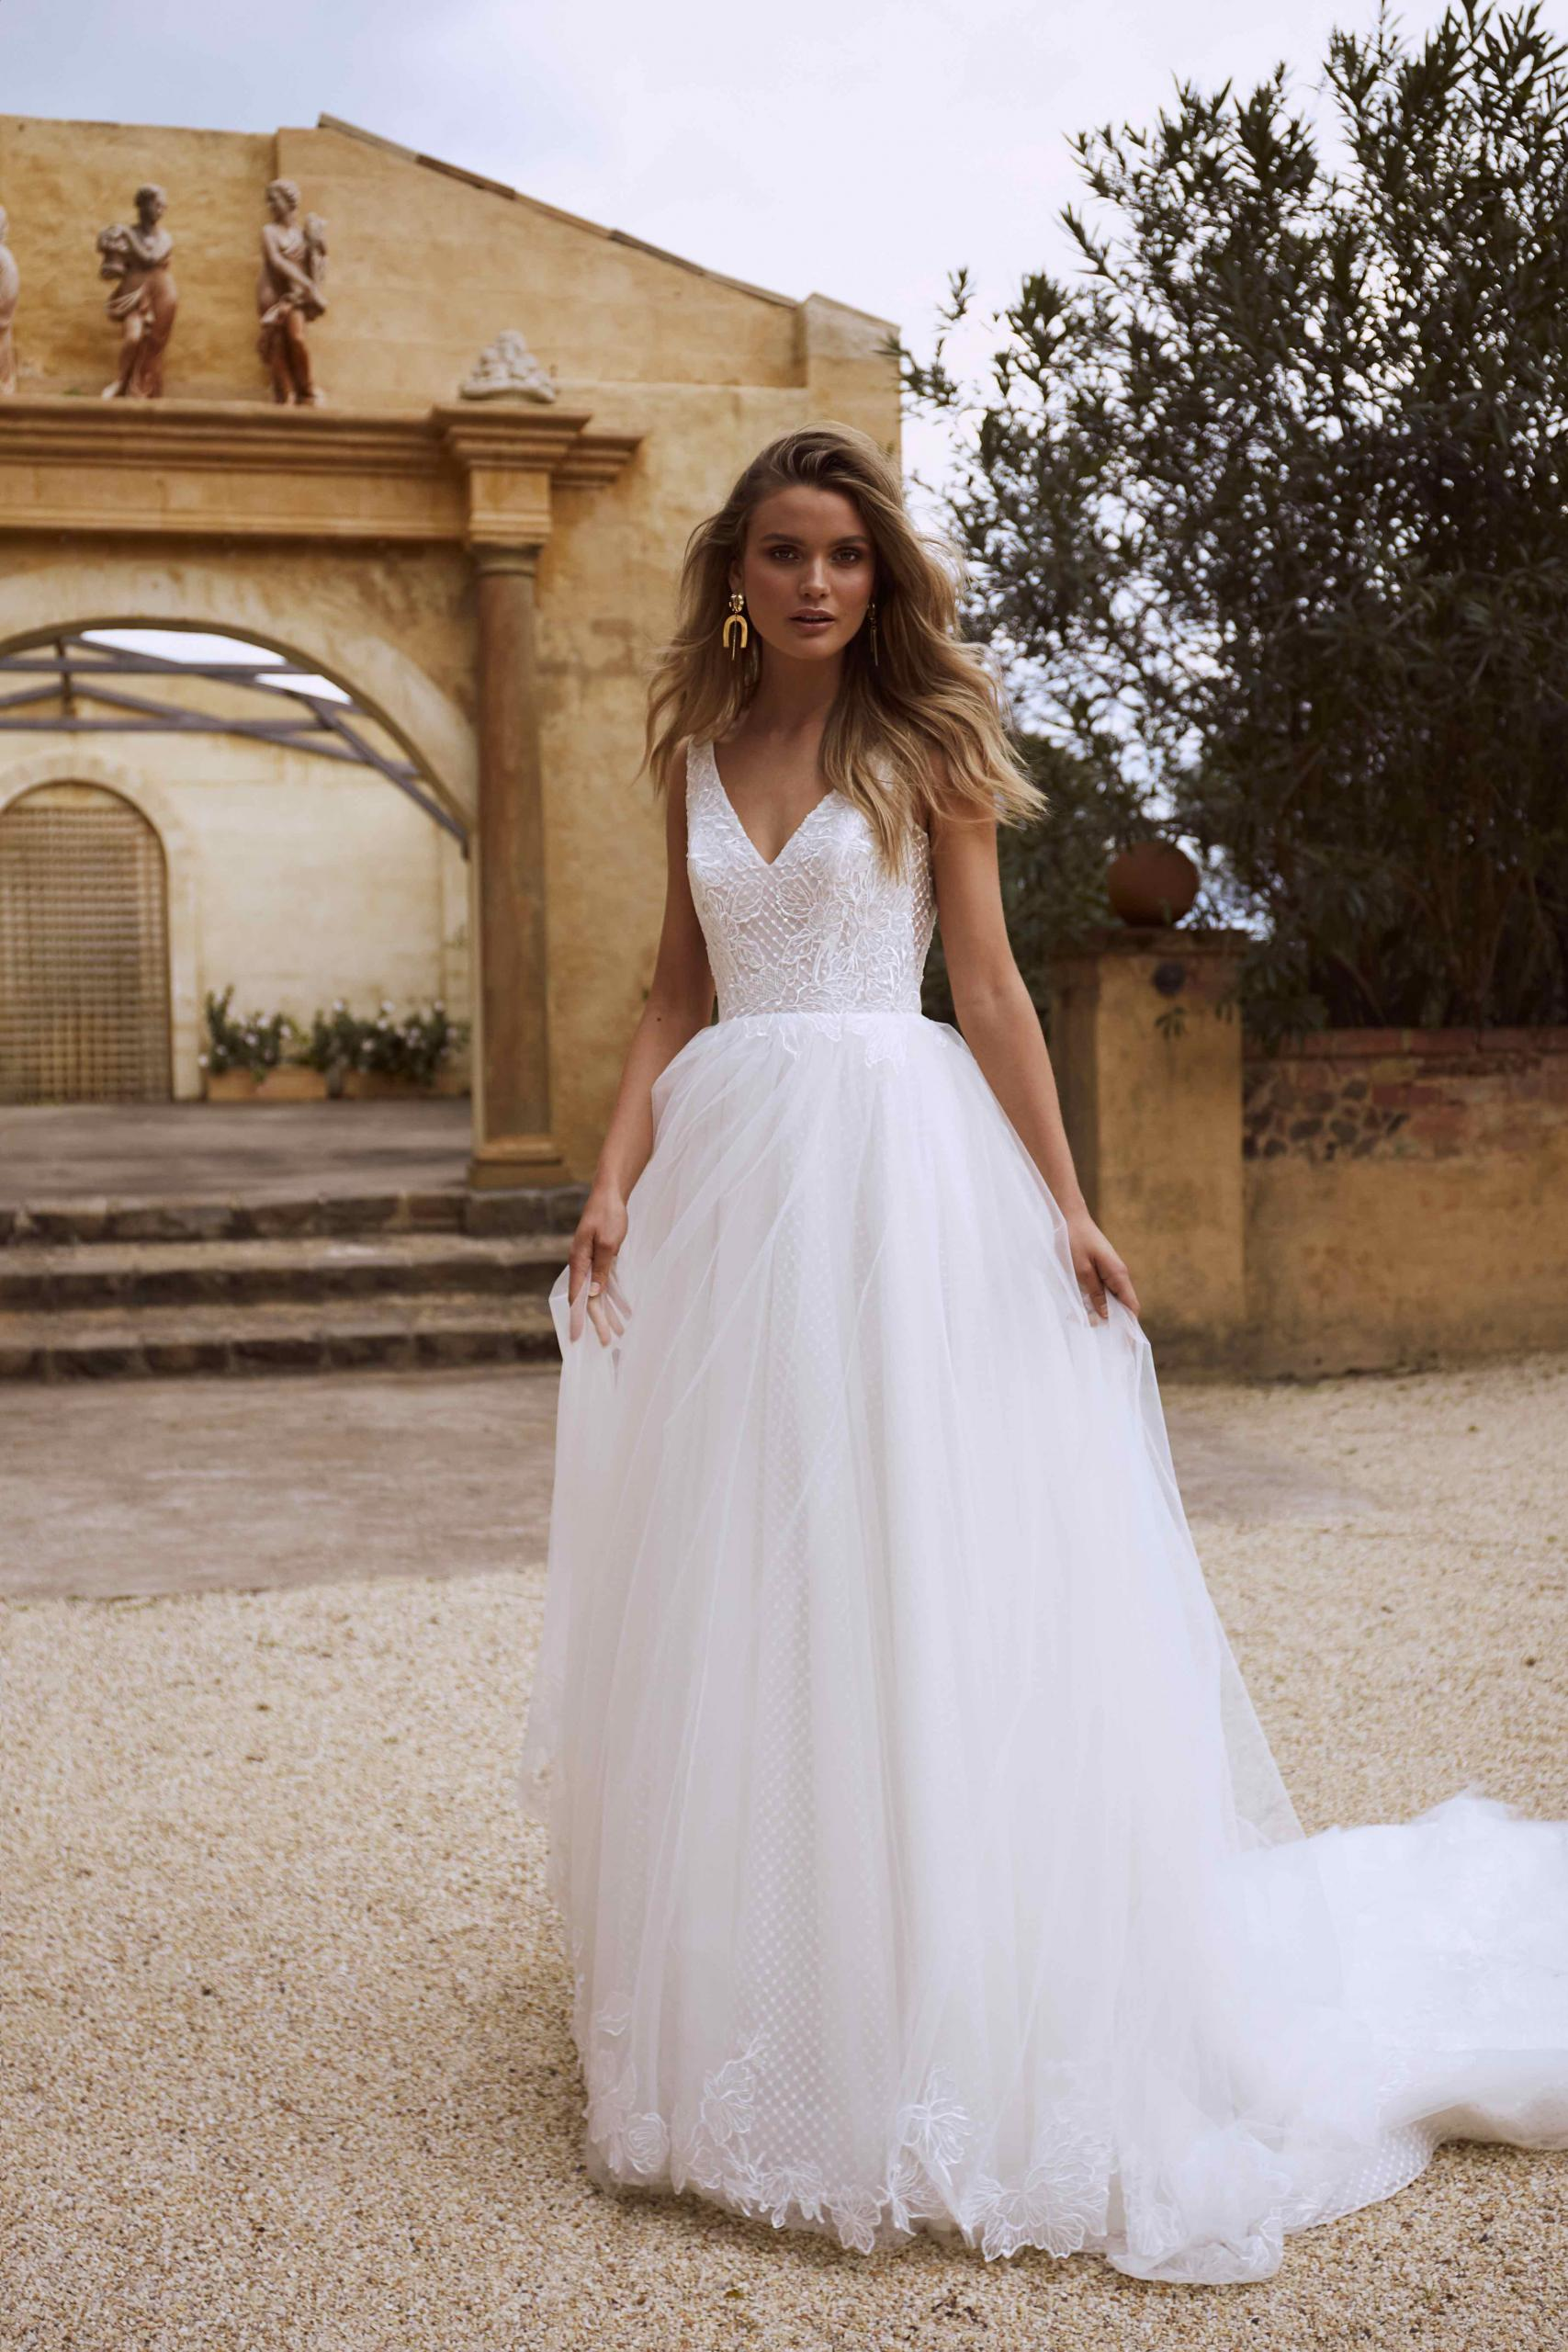 EAMON ML2618 V NECK LOW BACK FULL SKIRT A LINE TULLE AND LACE WEDDING DRESS MADI LANE LUV BRIDAL GOWN 6